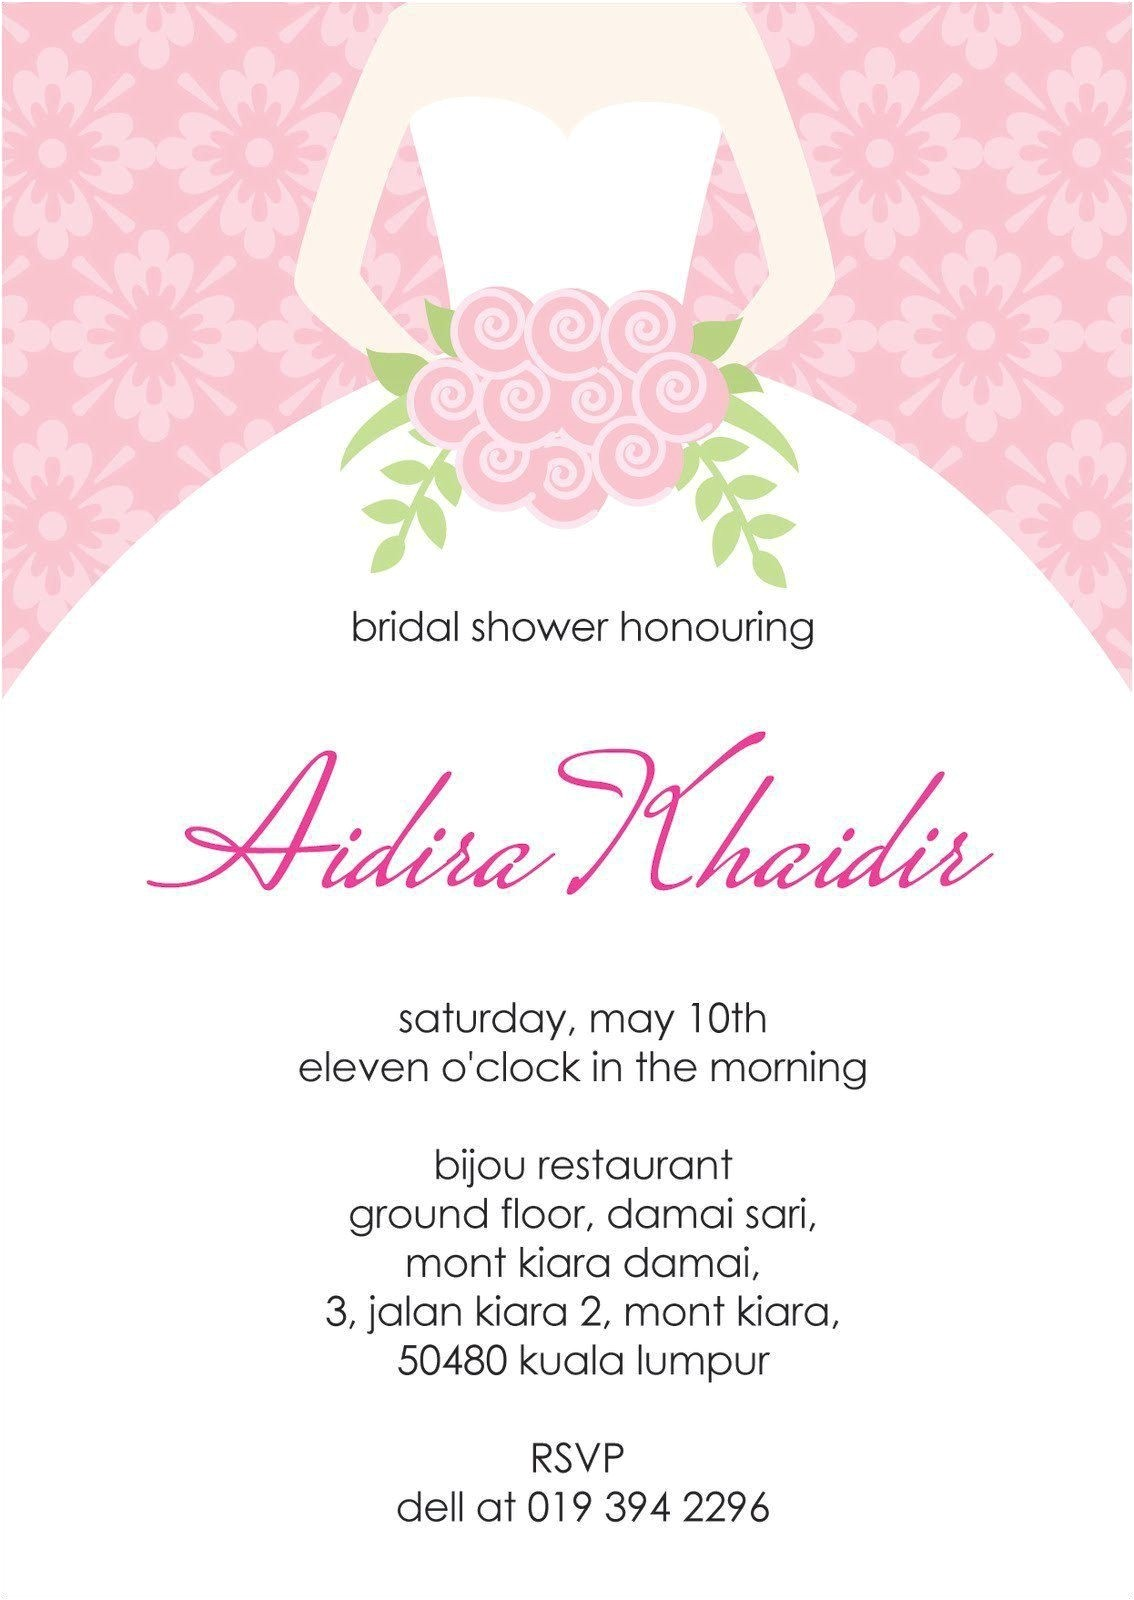 baby shower invitation cards templates inspirational bridal shower invite template chanel bridal shower invitation